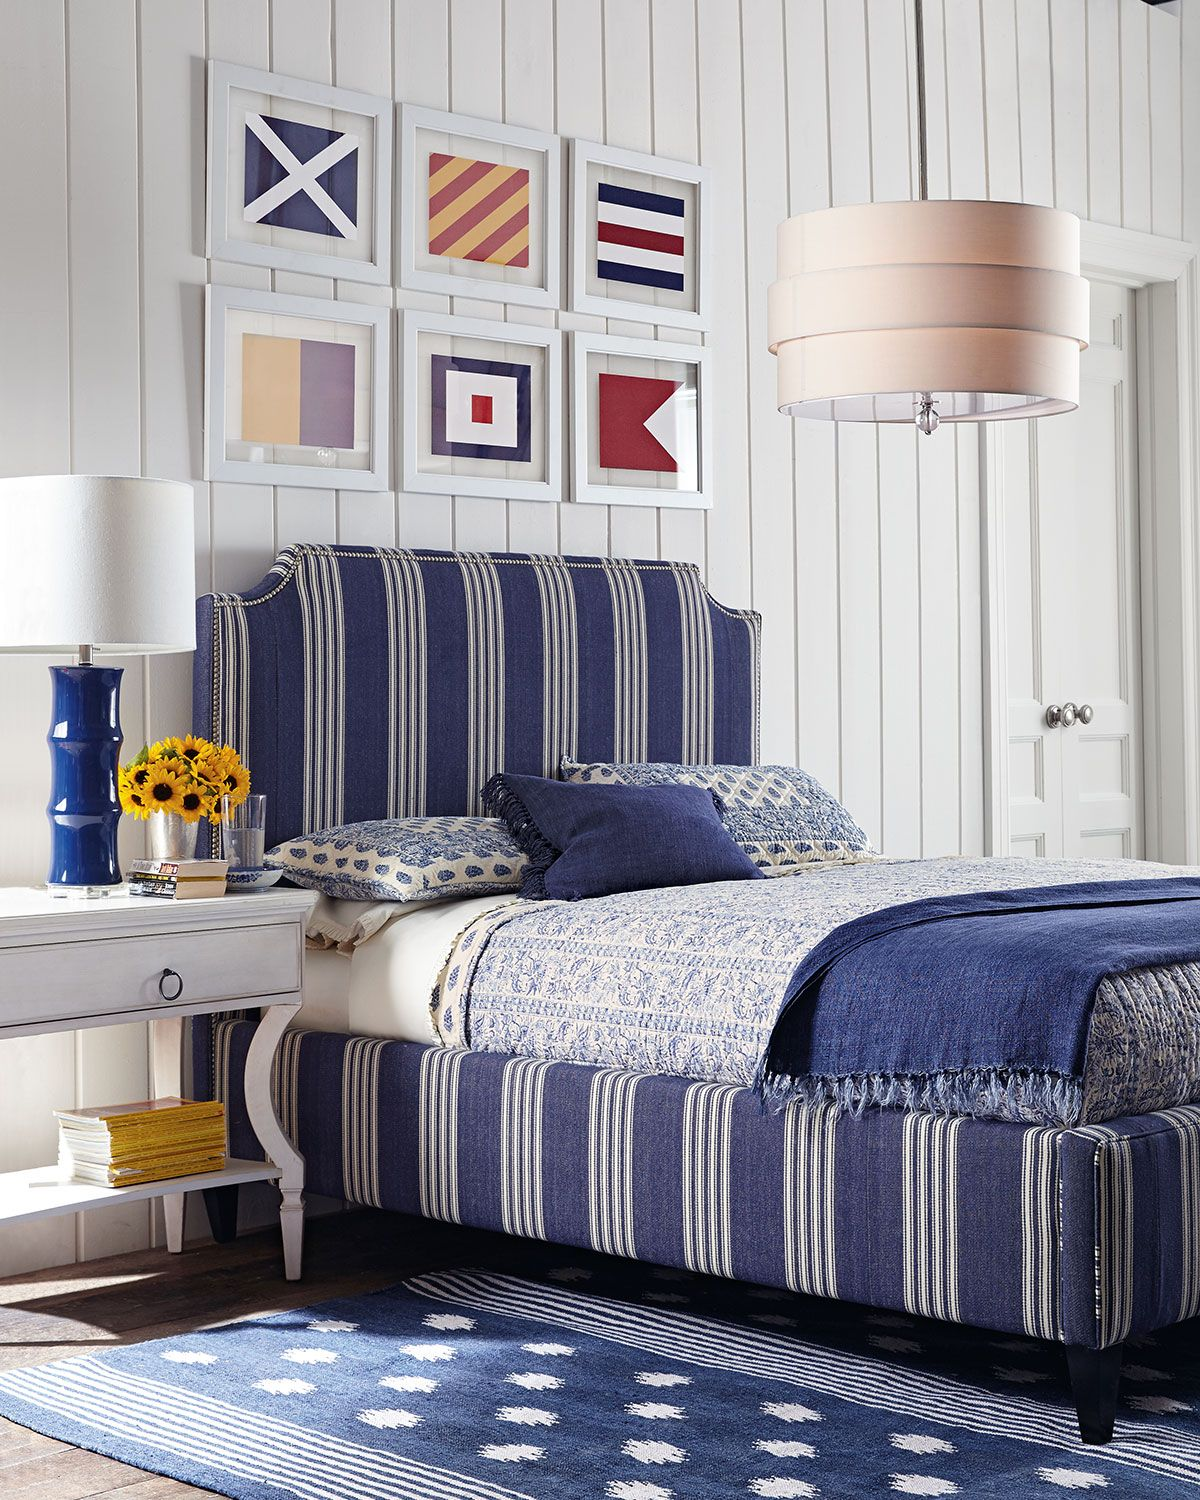 Nautical Bedroom nautical #bedroom blue and white stripes - nautical flags on white